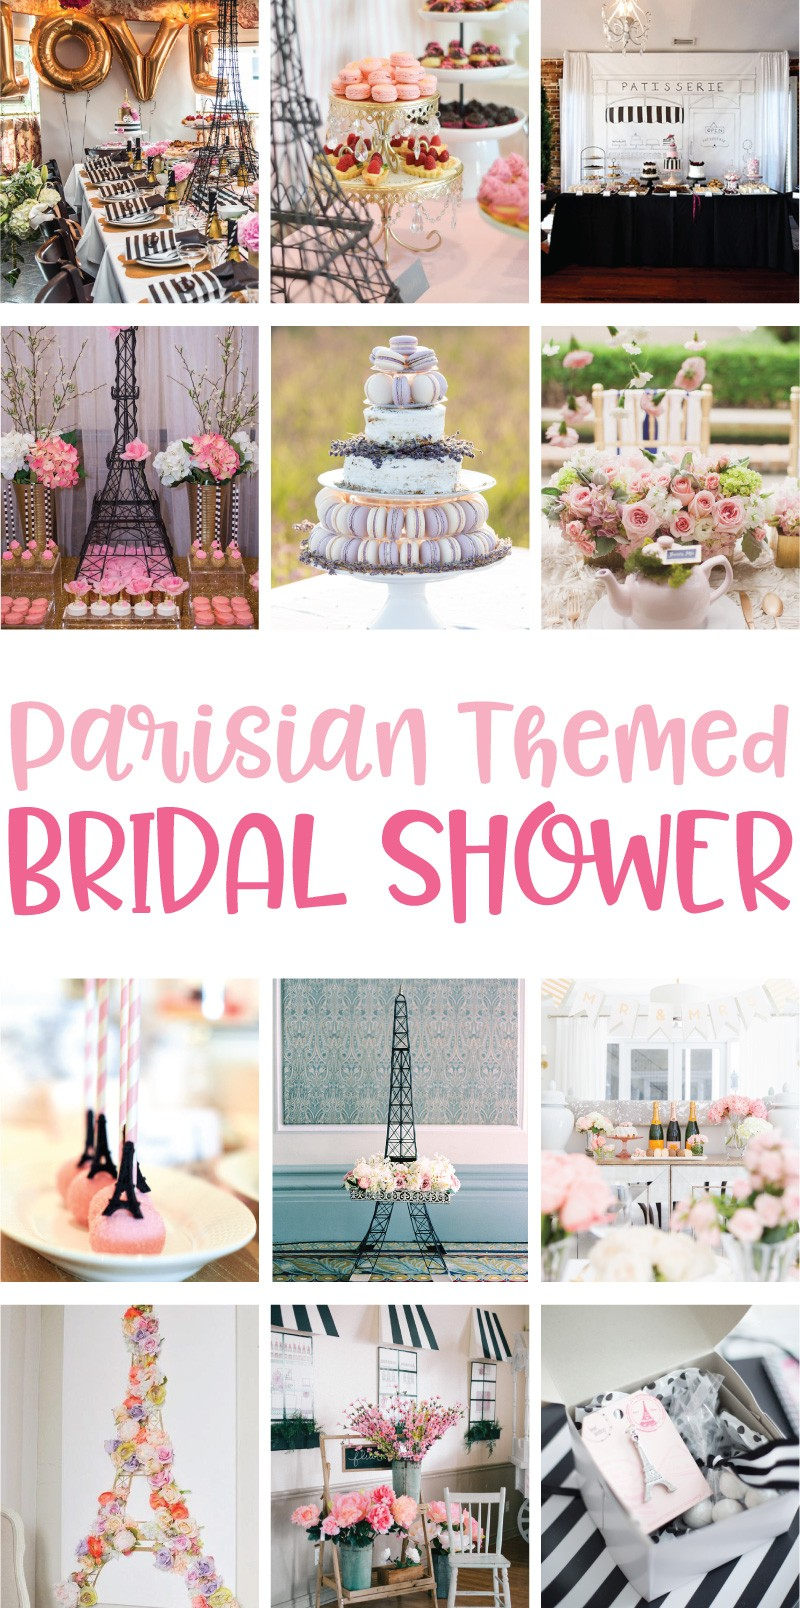 Gorgeous Parisian Themed Bridal Shower Ideas on Love the Day